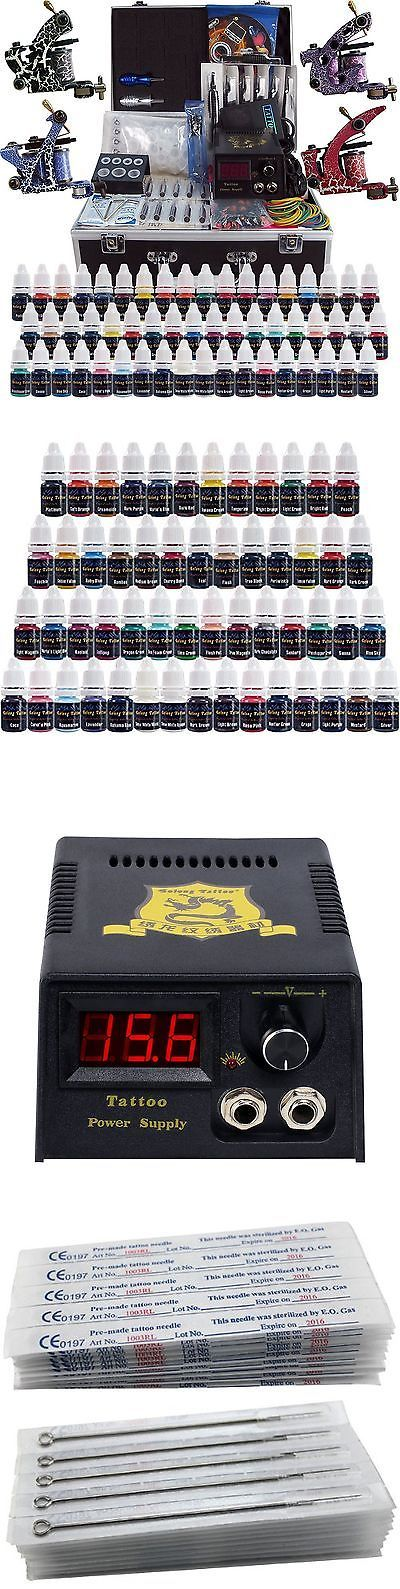 Tattoo Complete Kits: Solong Tattoo Complete Tattoo Kit 4 Pro Machine Guns 54 Inks Power Supply... New -> BUY IT NOW ONLY: $100 on eBay!